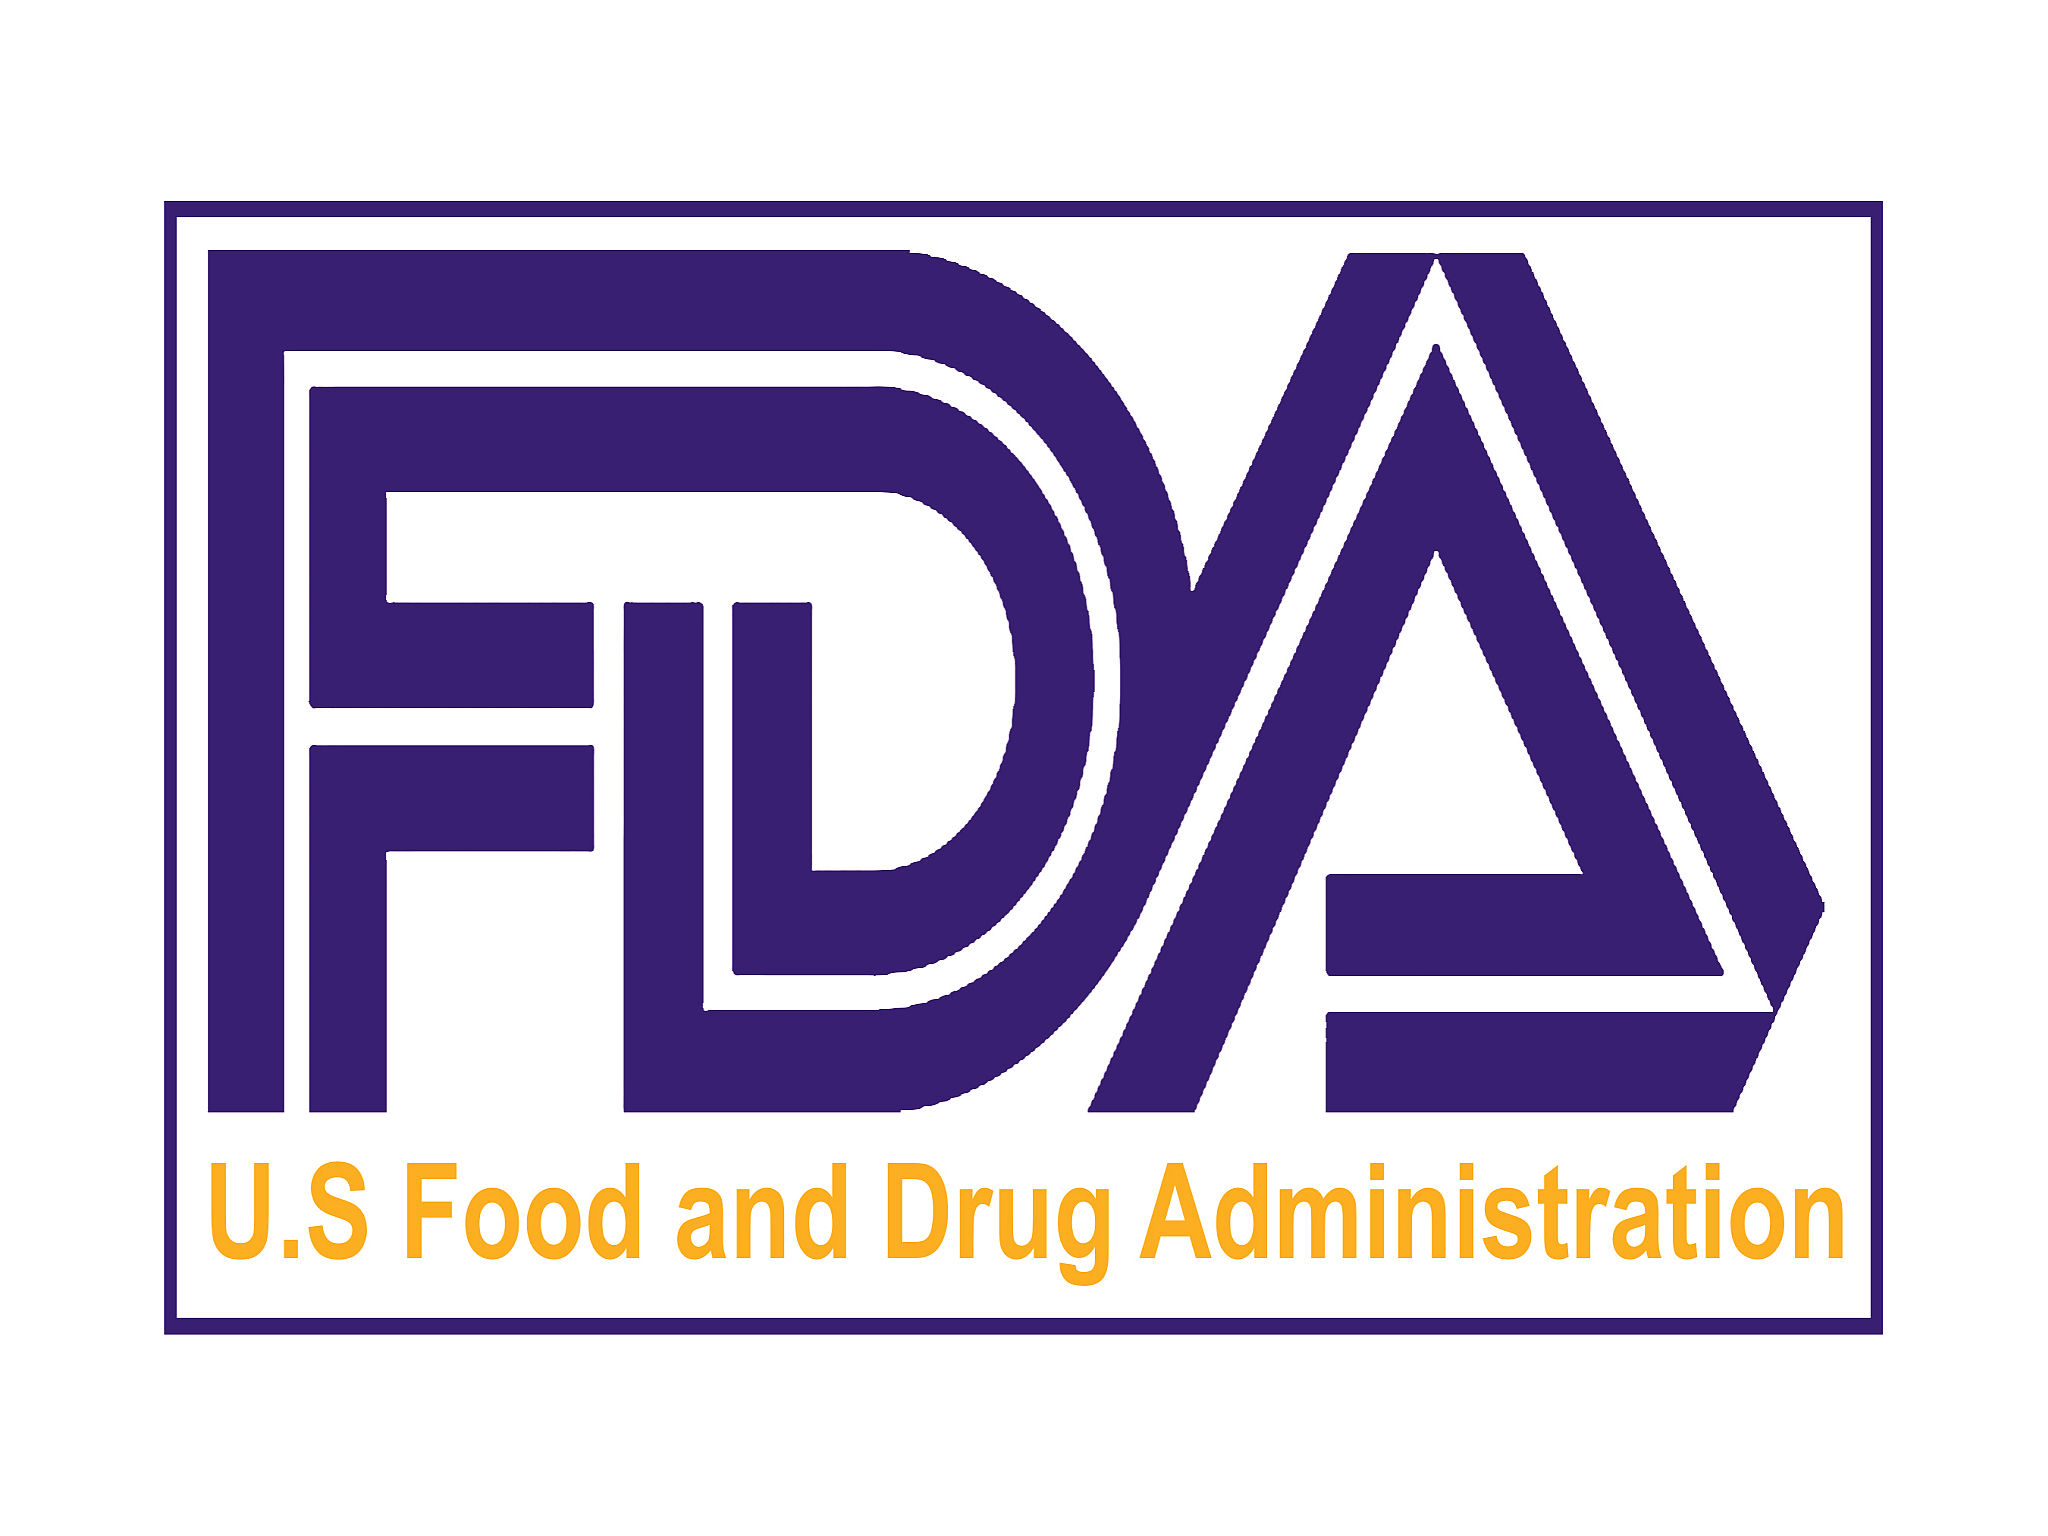 fda evaluation of medication The food and drug administration (fda) is responsible for protecting the public health by ensuring the safety, efficacy, and security of human and veterinary drugs, biological products, medical devices, the nation's food supply, cosmetics, and products that emit radiation.